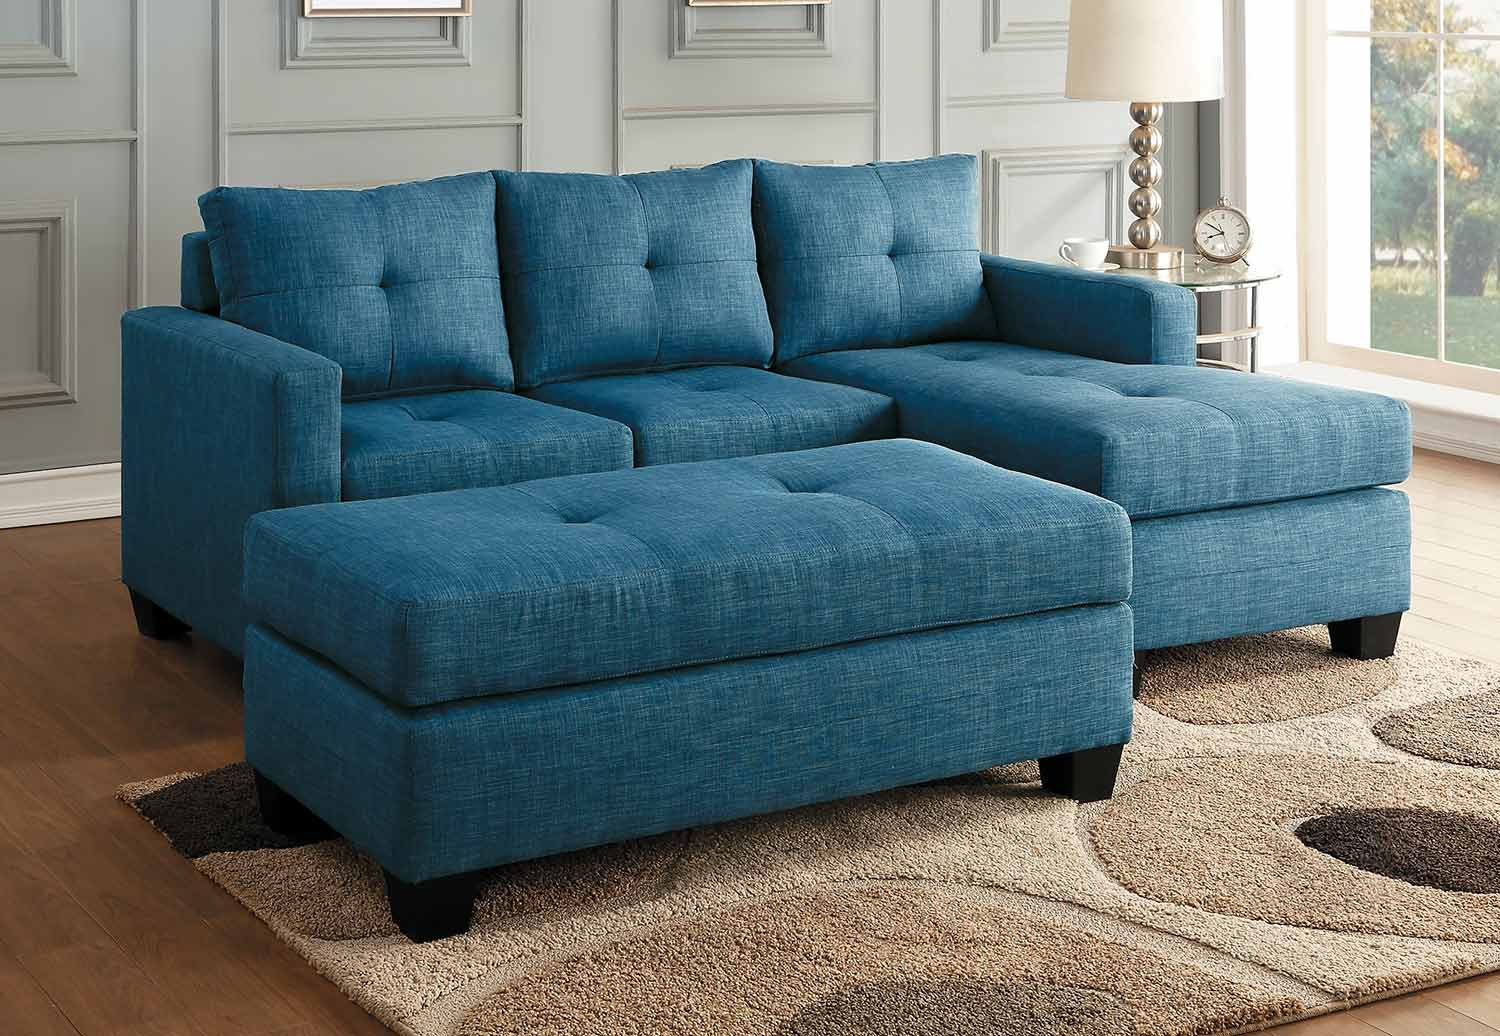 Homelegance Phelps Sectional Sofa Set - Blue